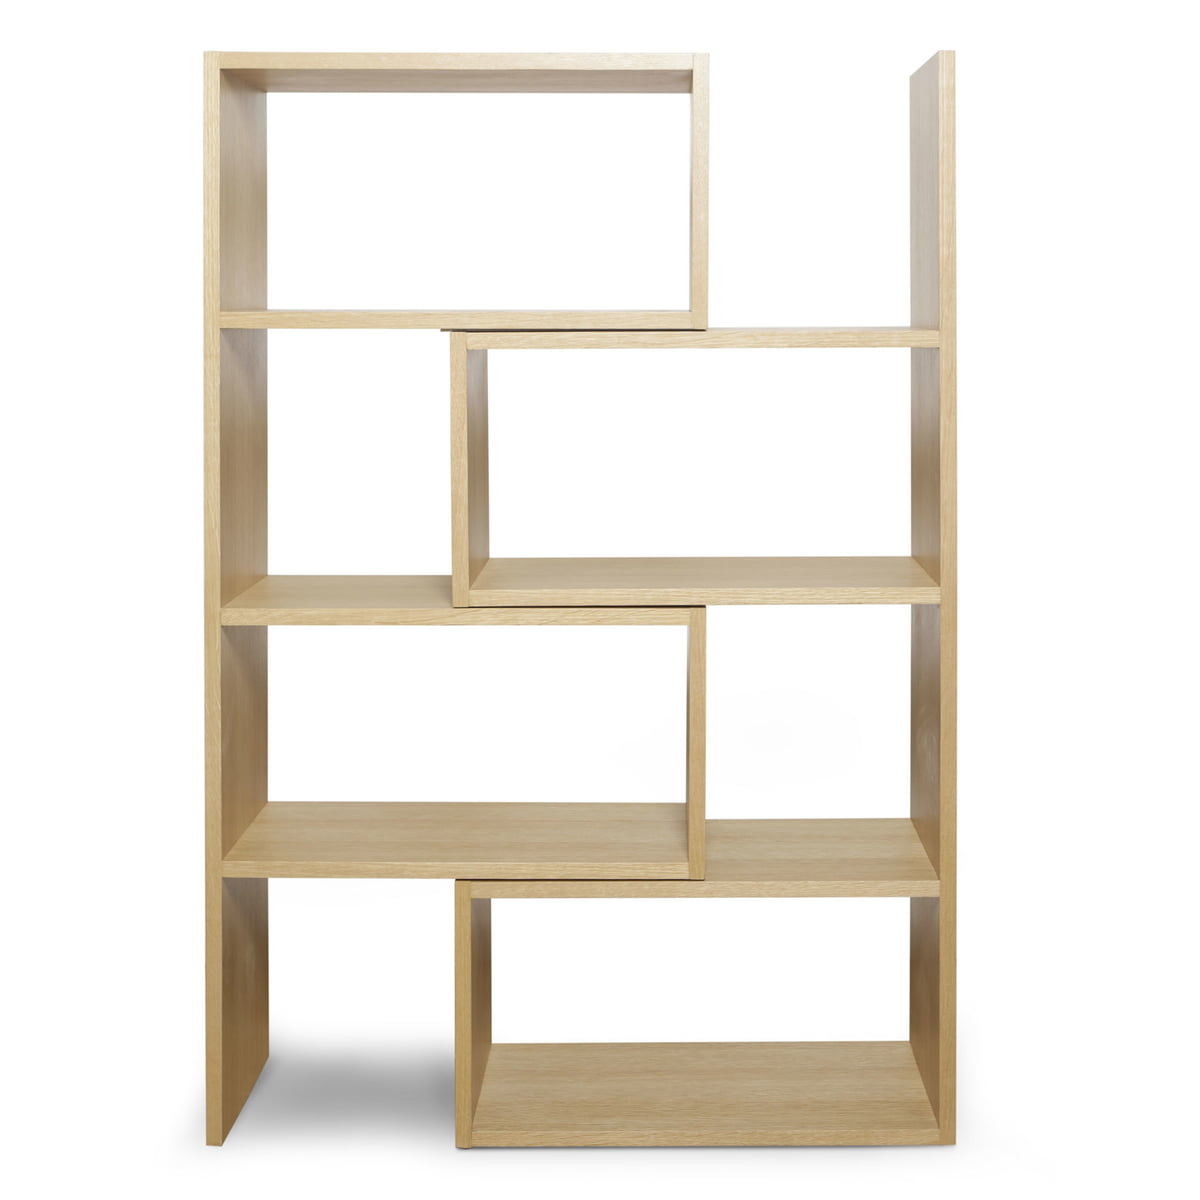 purchase the extend shelf by design house stockholm